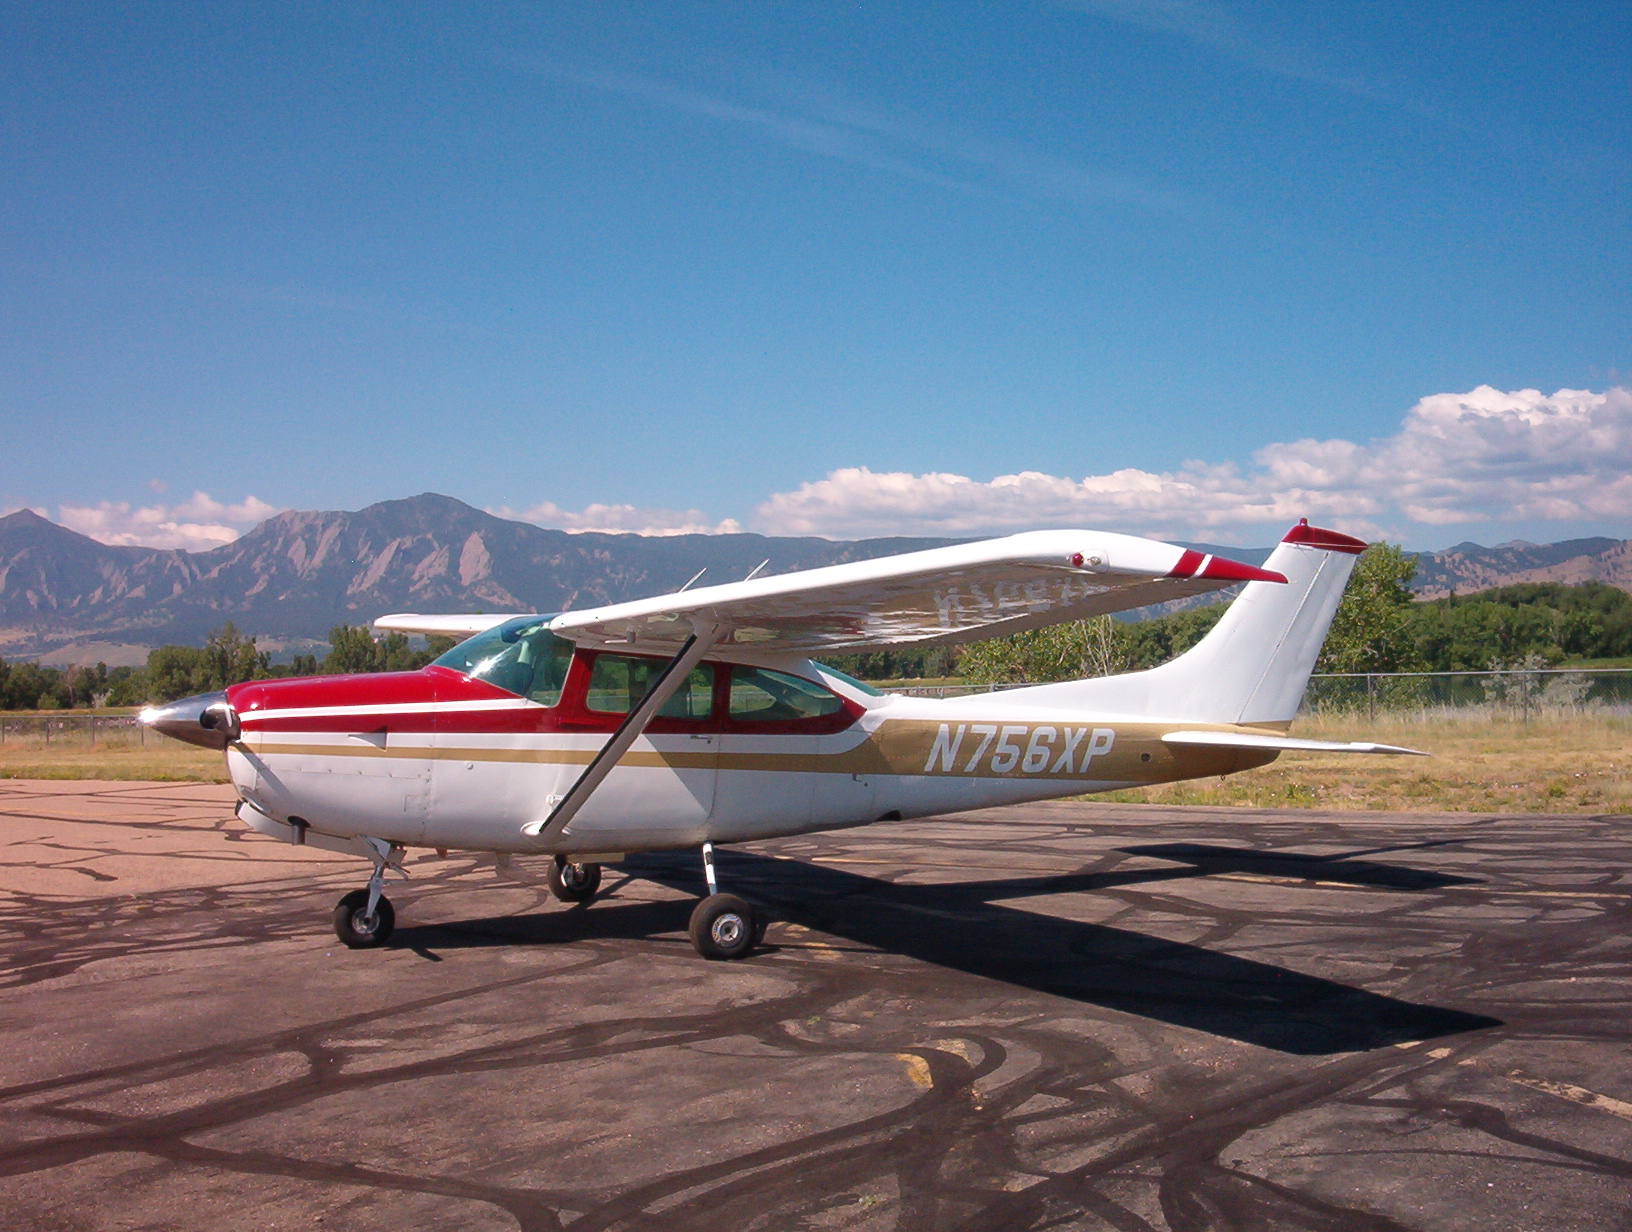 TR182 N756XP aircraft for rental at Specialty Flight Training, Inc Learn to Fly Boulder, CO